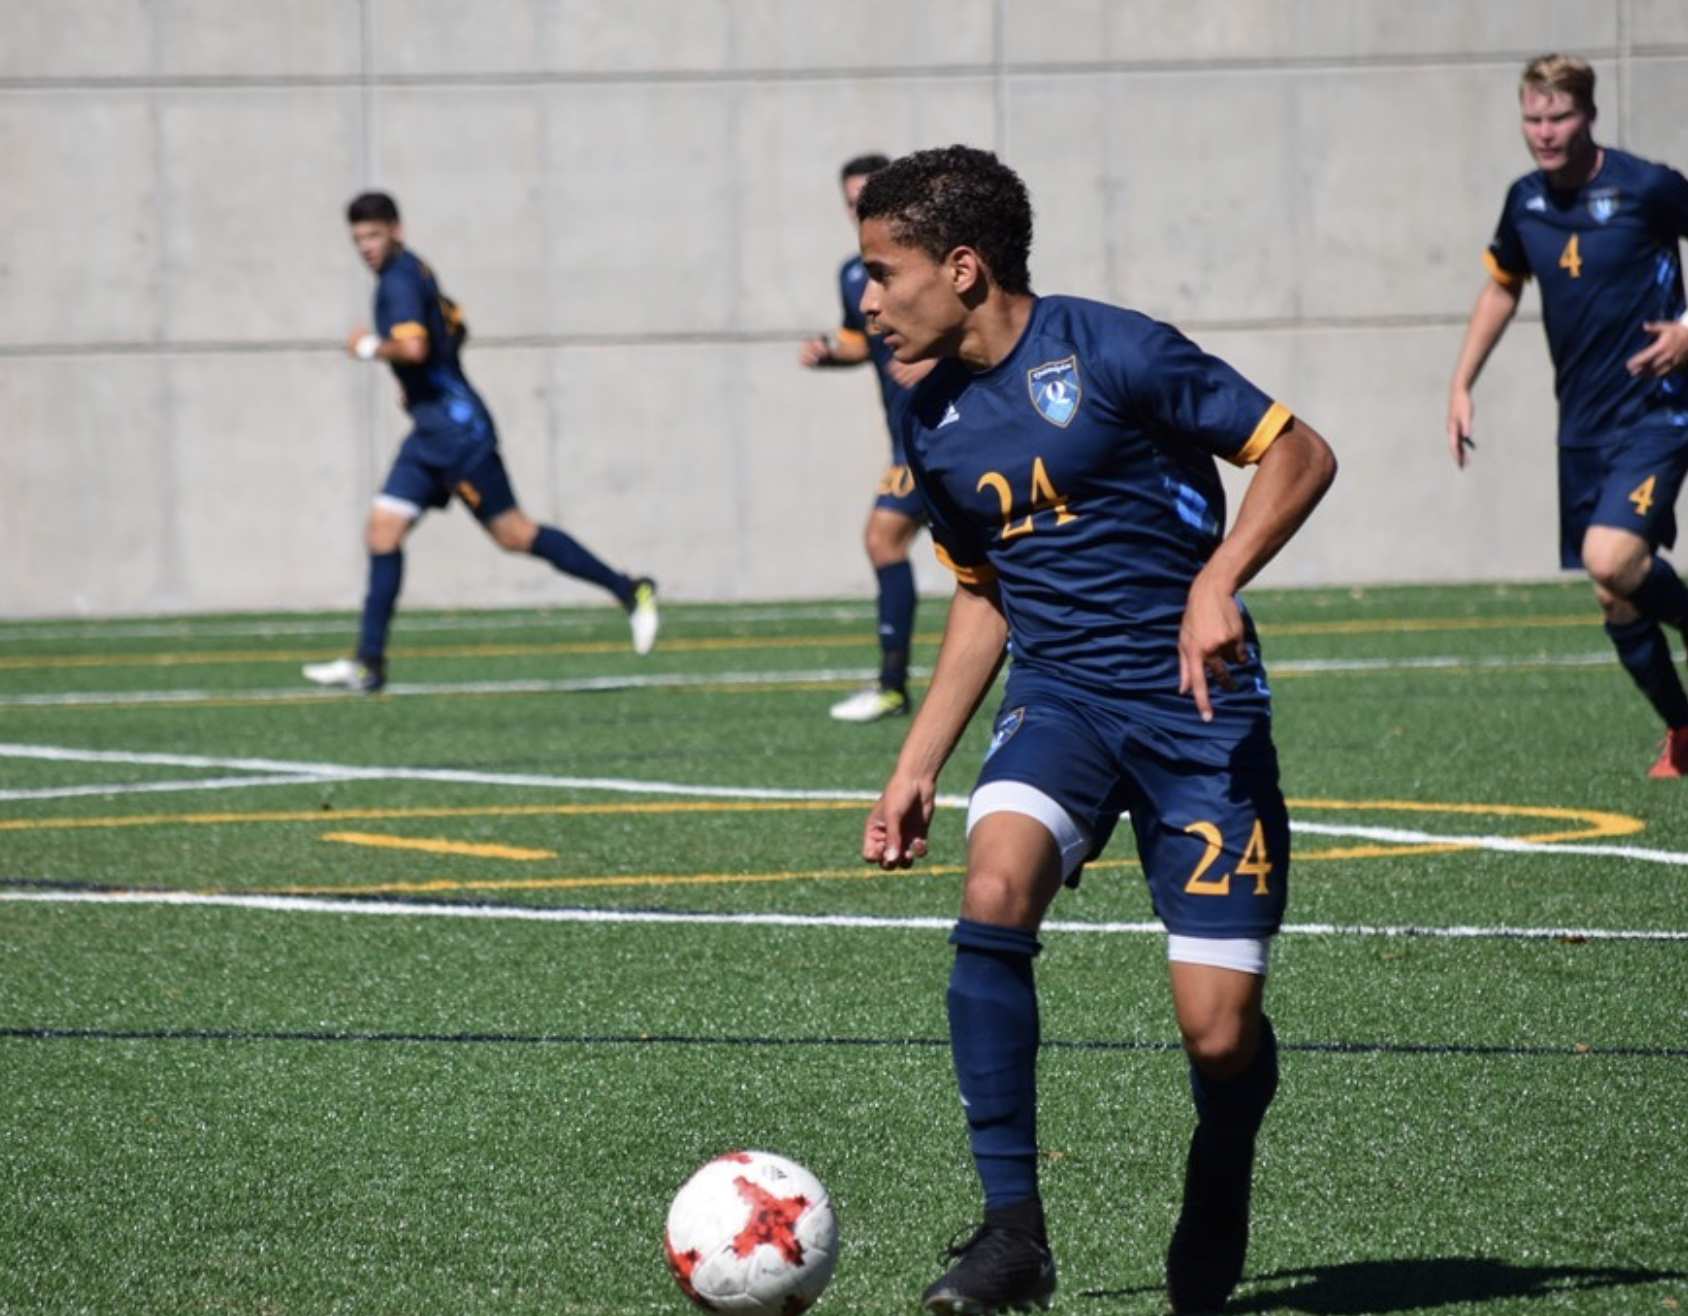 Four Quinnipiac men's soccer players named to All-MAAC teams